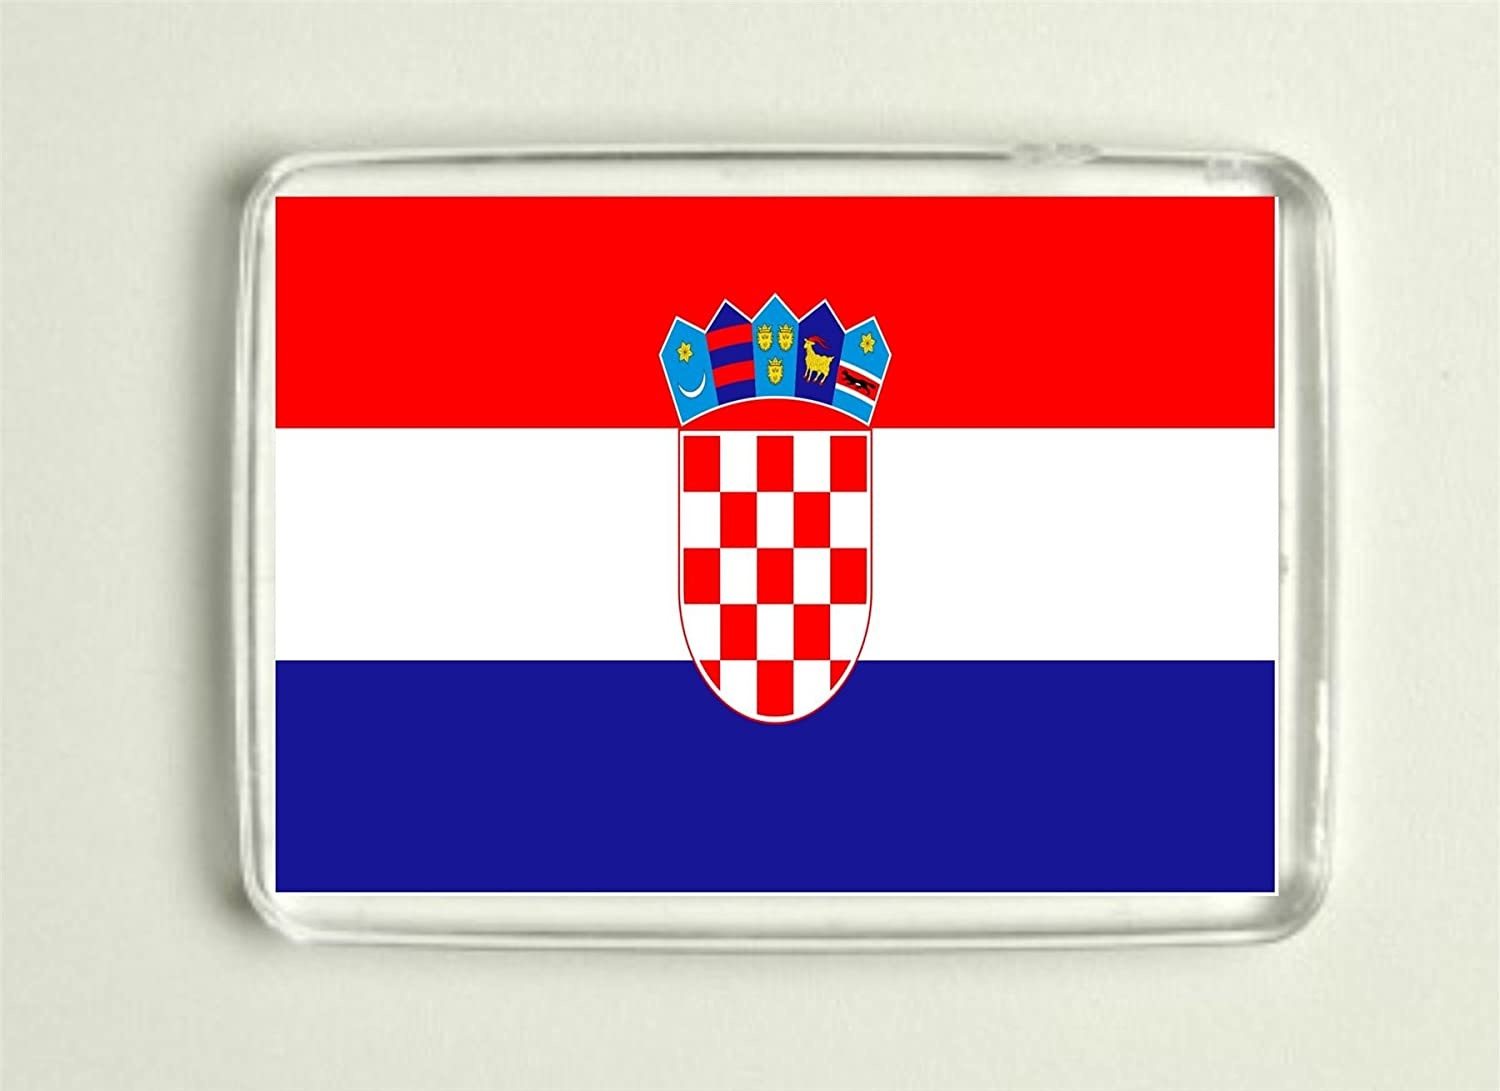 European Championships 2016 Fridge Magnet - Croatian Flag Cannon Collectables